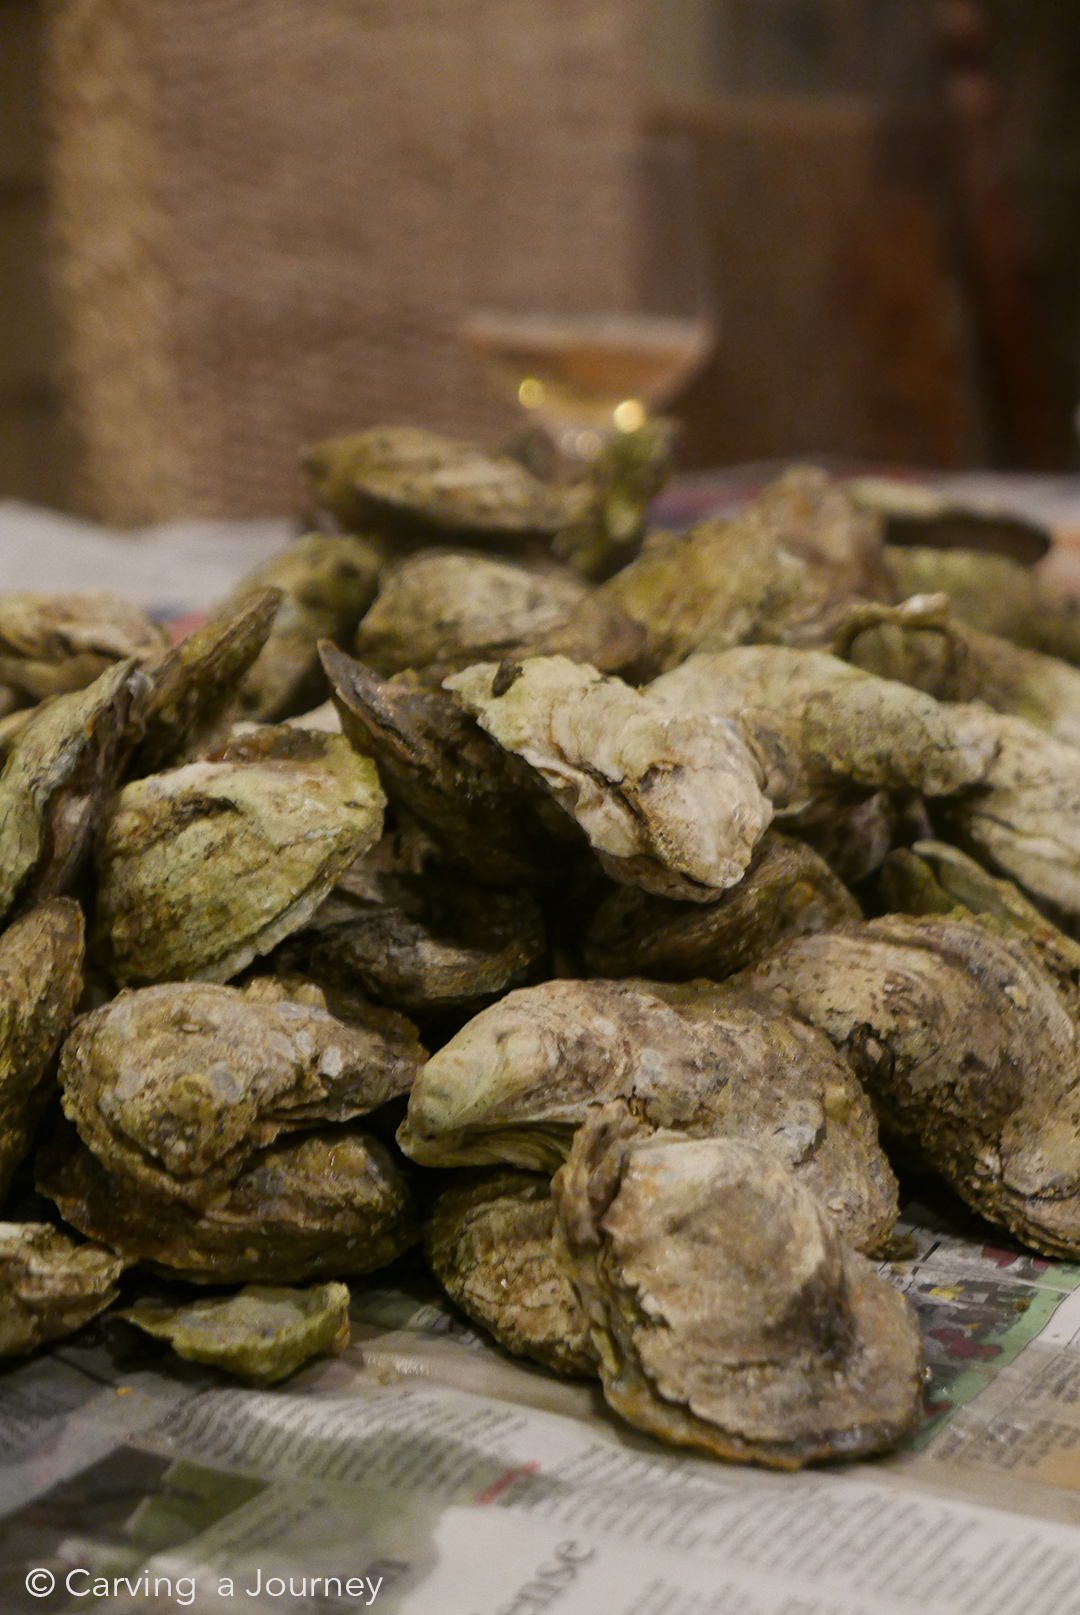 Chesapeake Bay Oysters